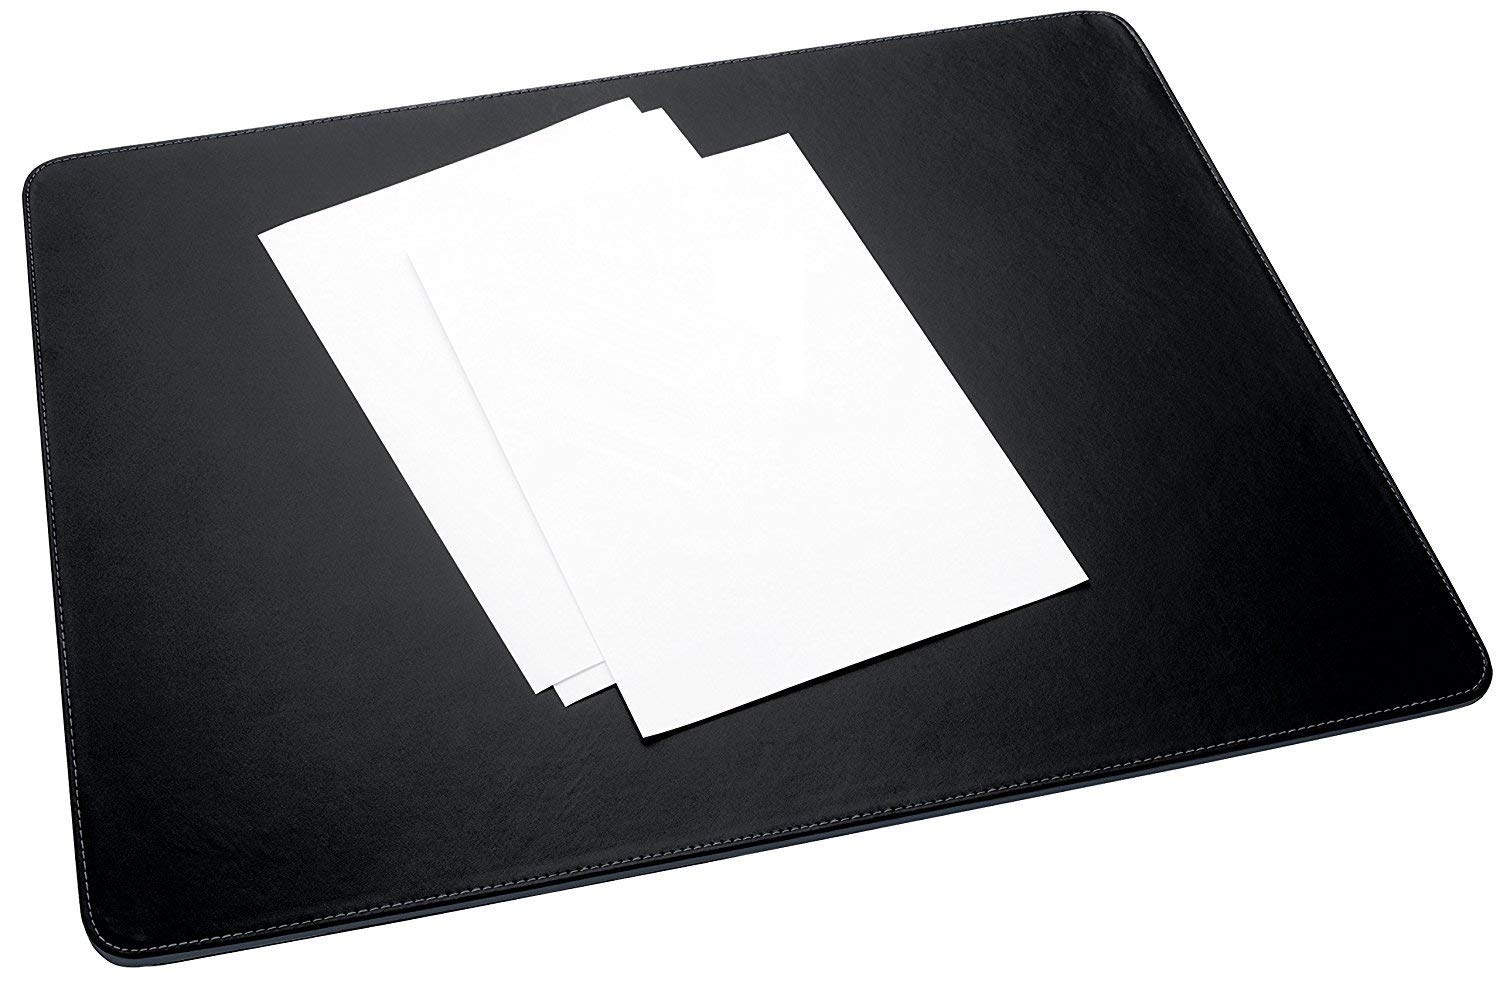 Artikle Desk Pad Black & Dark Grey